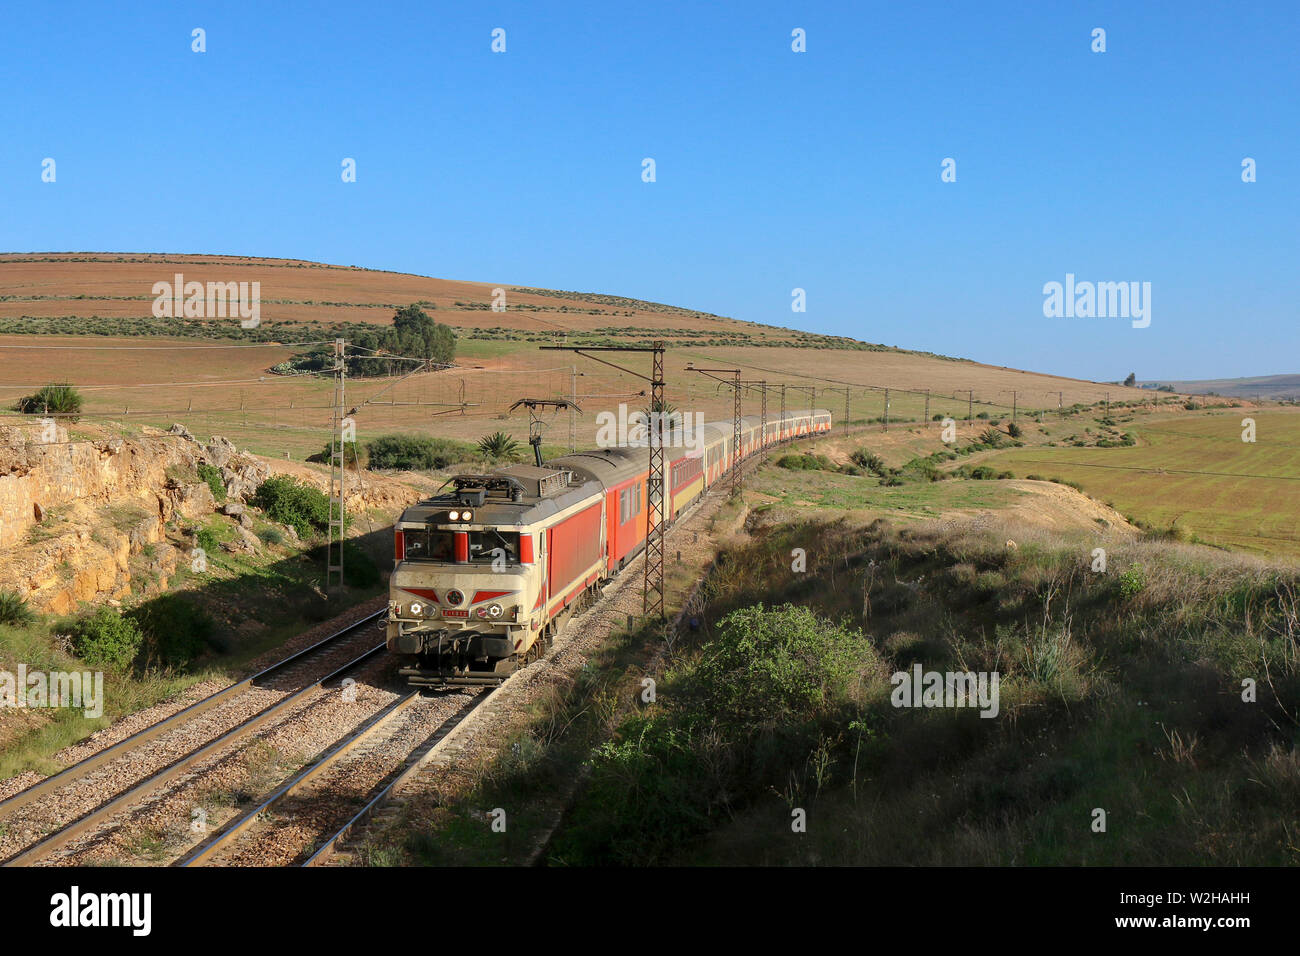 By train through the Moroccan hill country - Stock Image